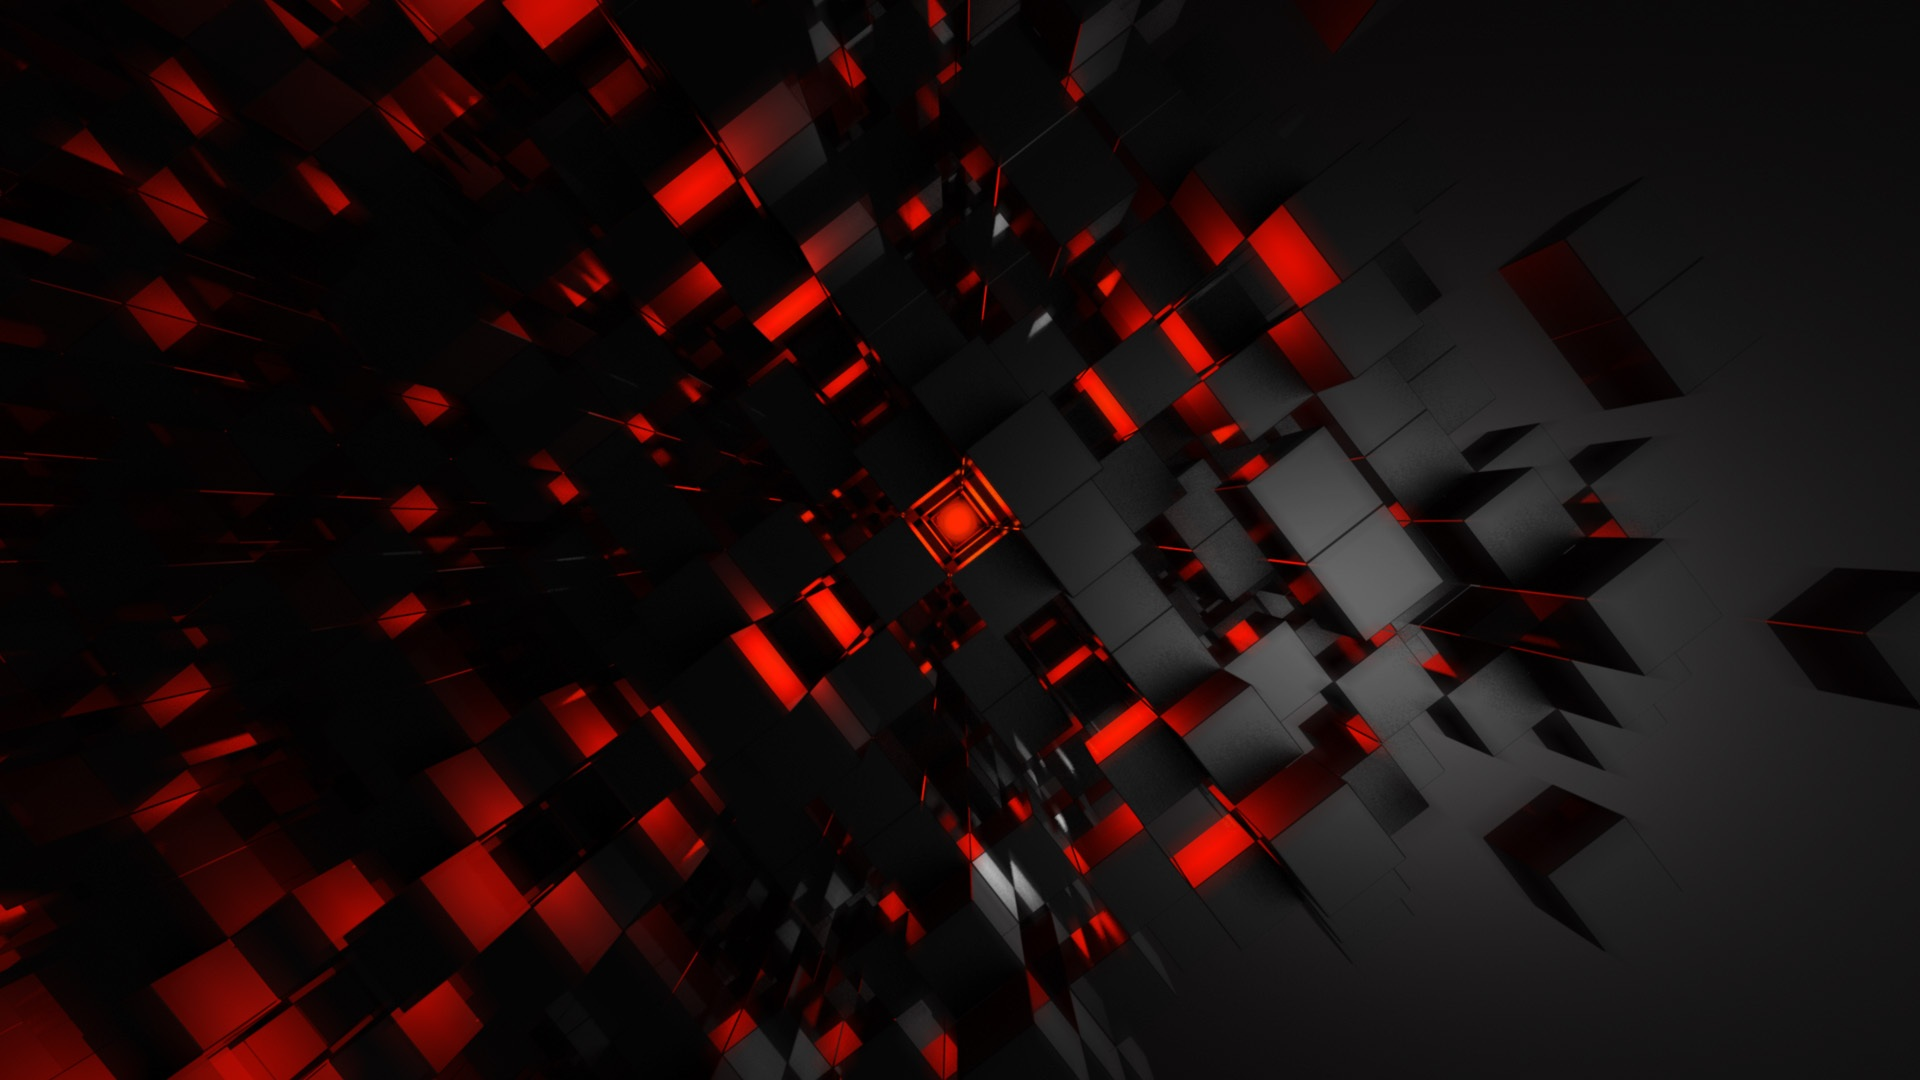 Abstract Neon Wallpapers HD 1920x1080